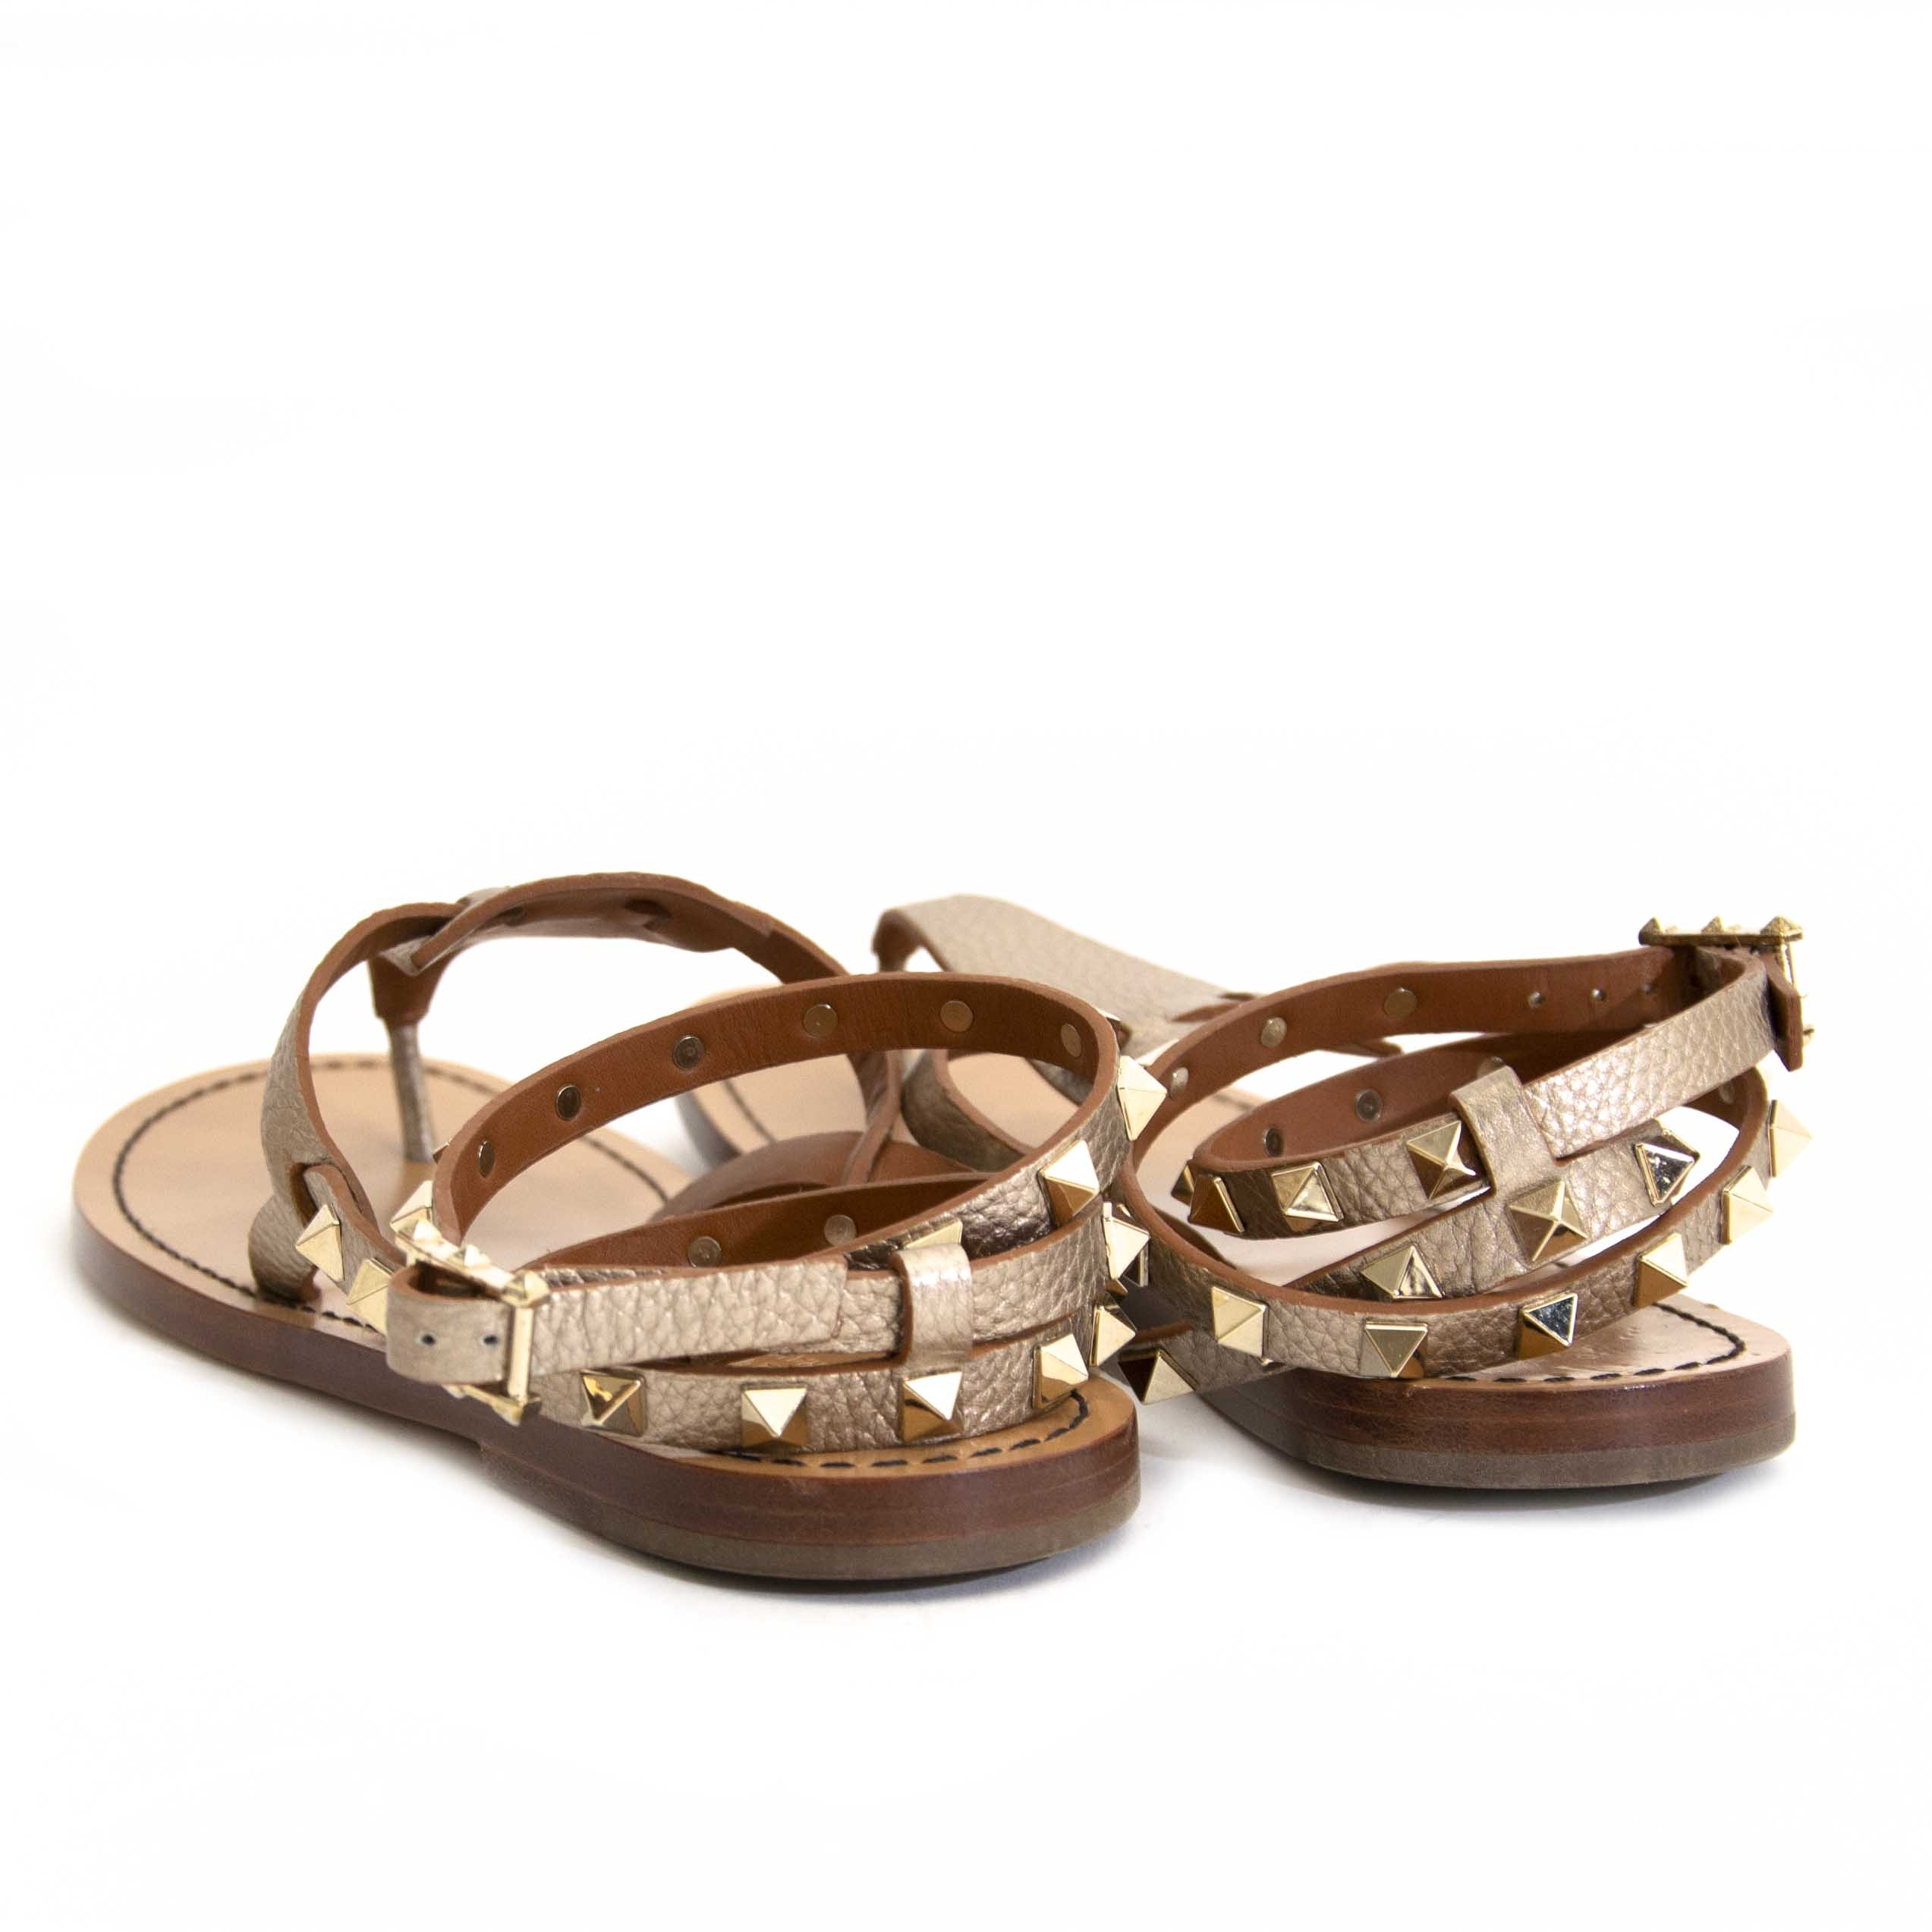 Valentino Gold Metallic Rockstud Sandals - size 37 like new online secondhand store